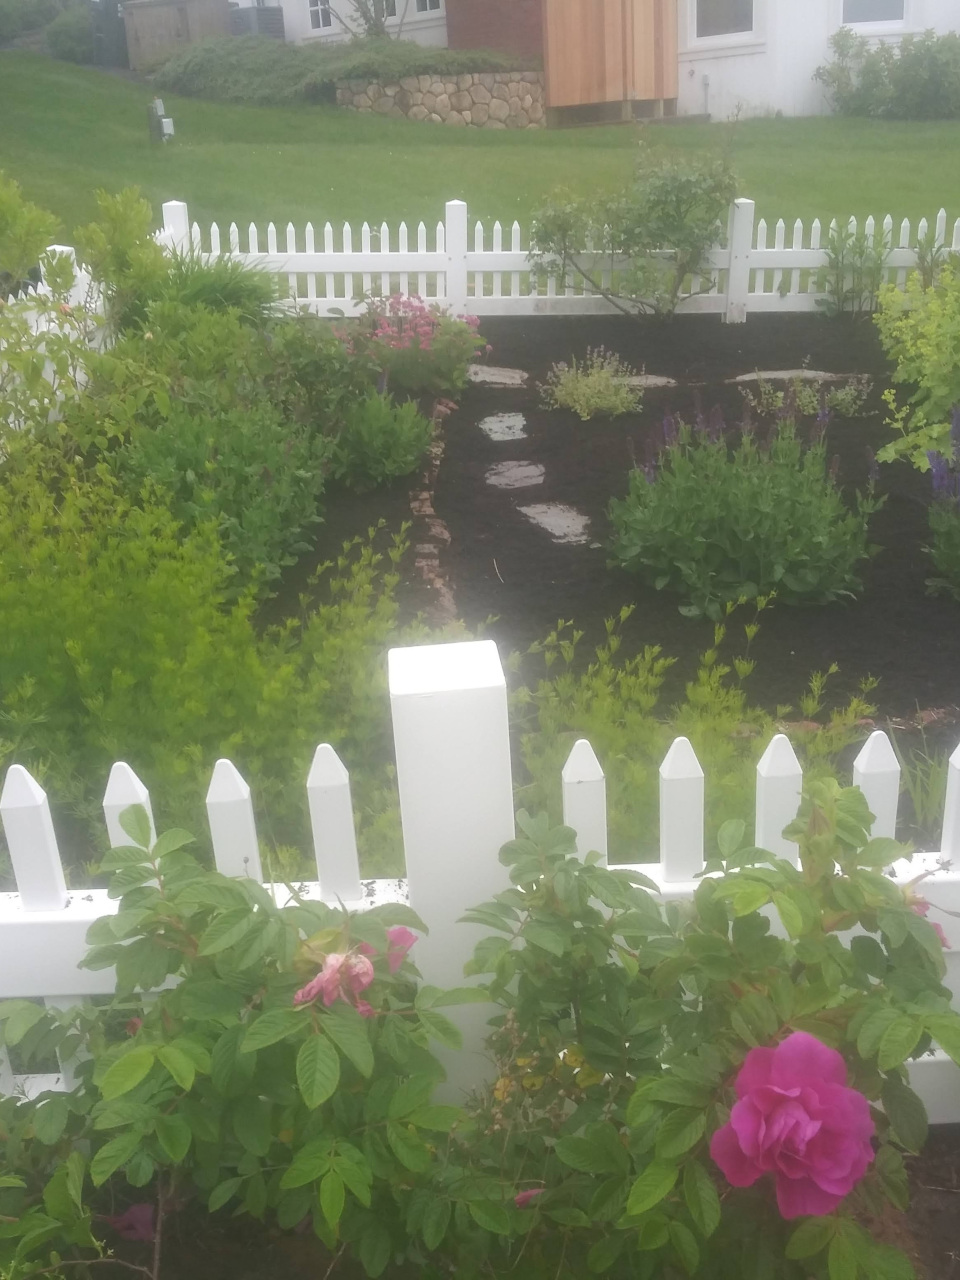 White fence with roses growing on it and garden with rock paths